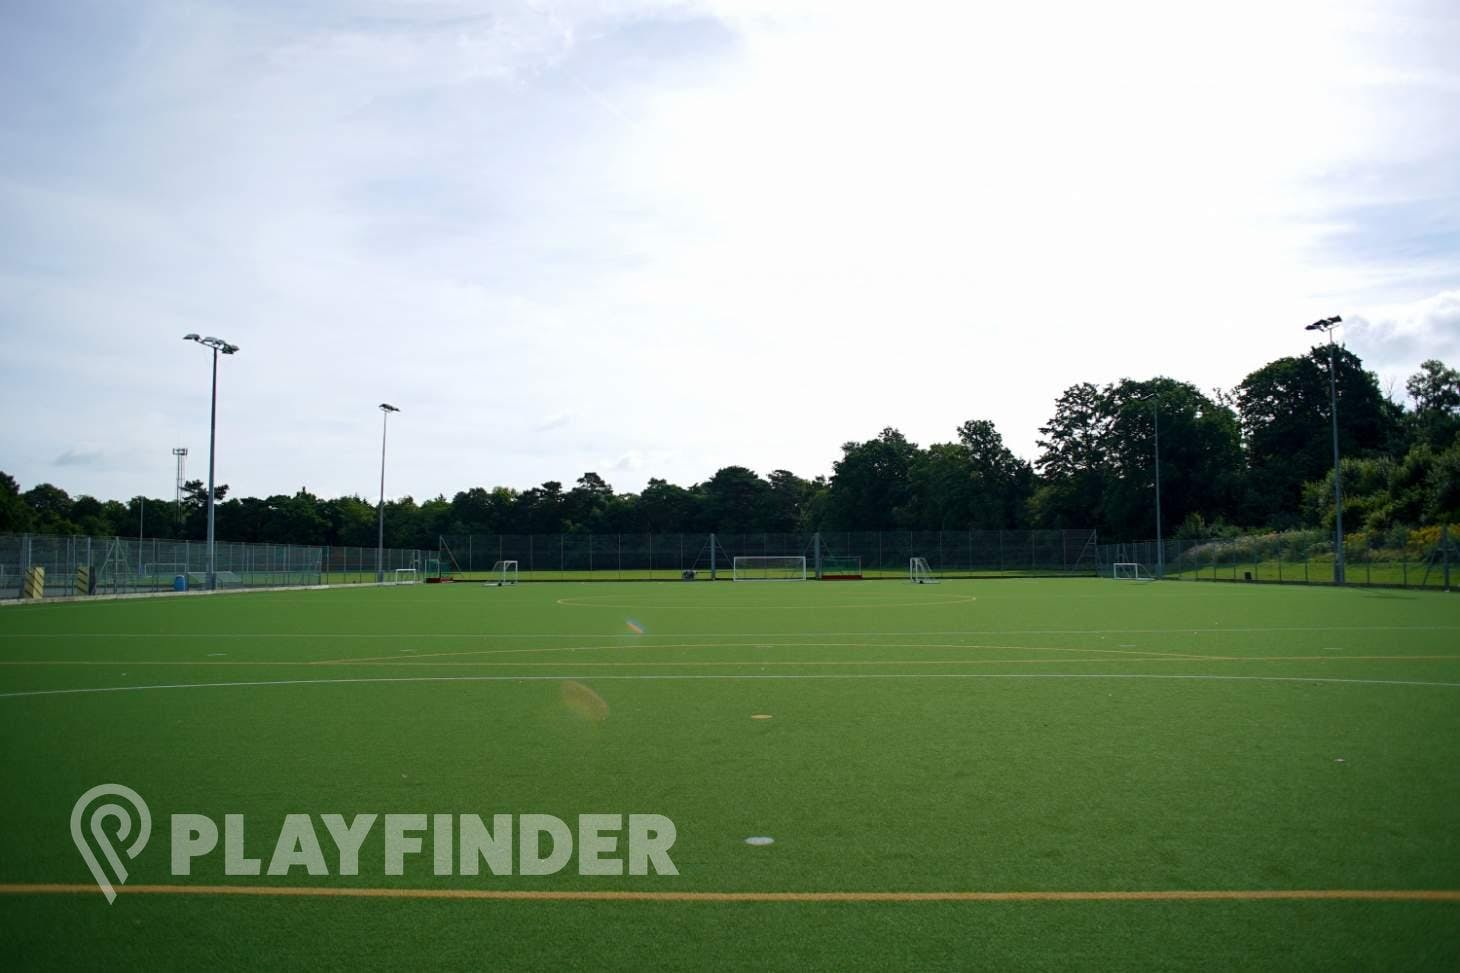 Charters Leisure Centre 11 a side | Astroturf football pitch